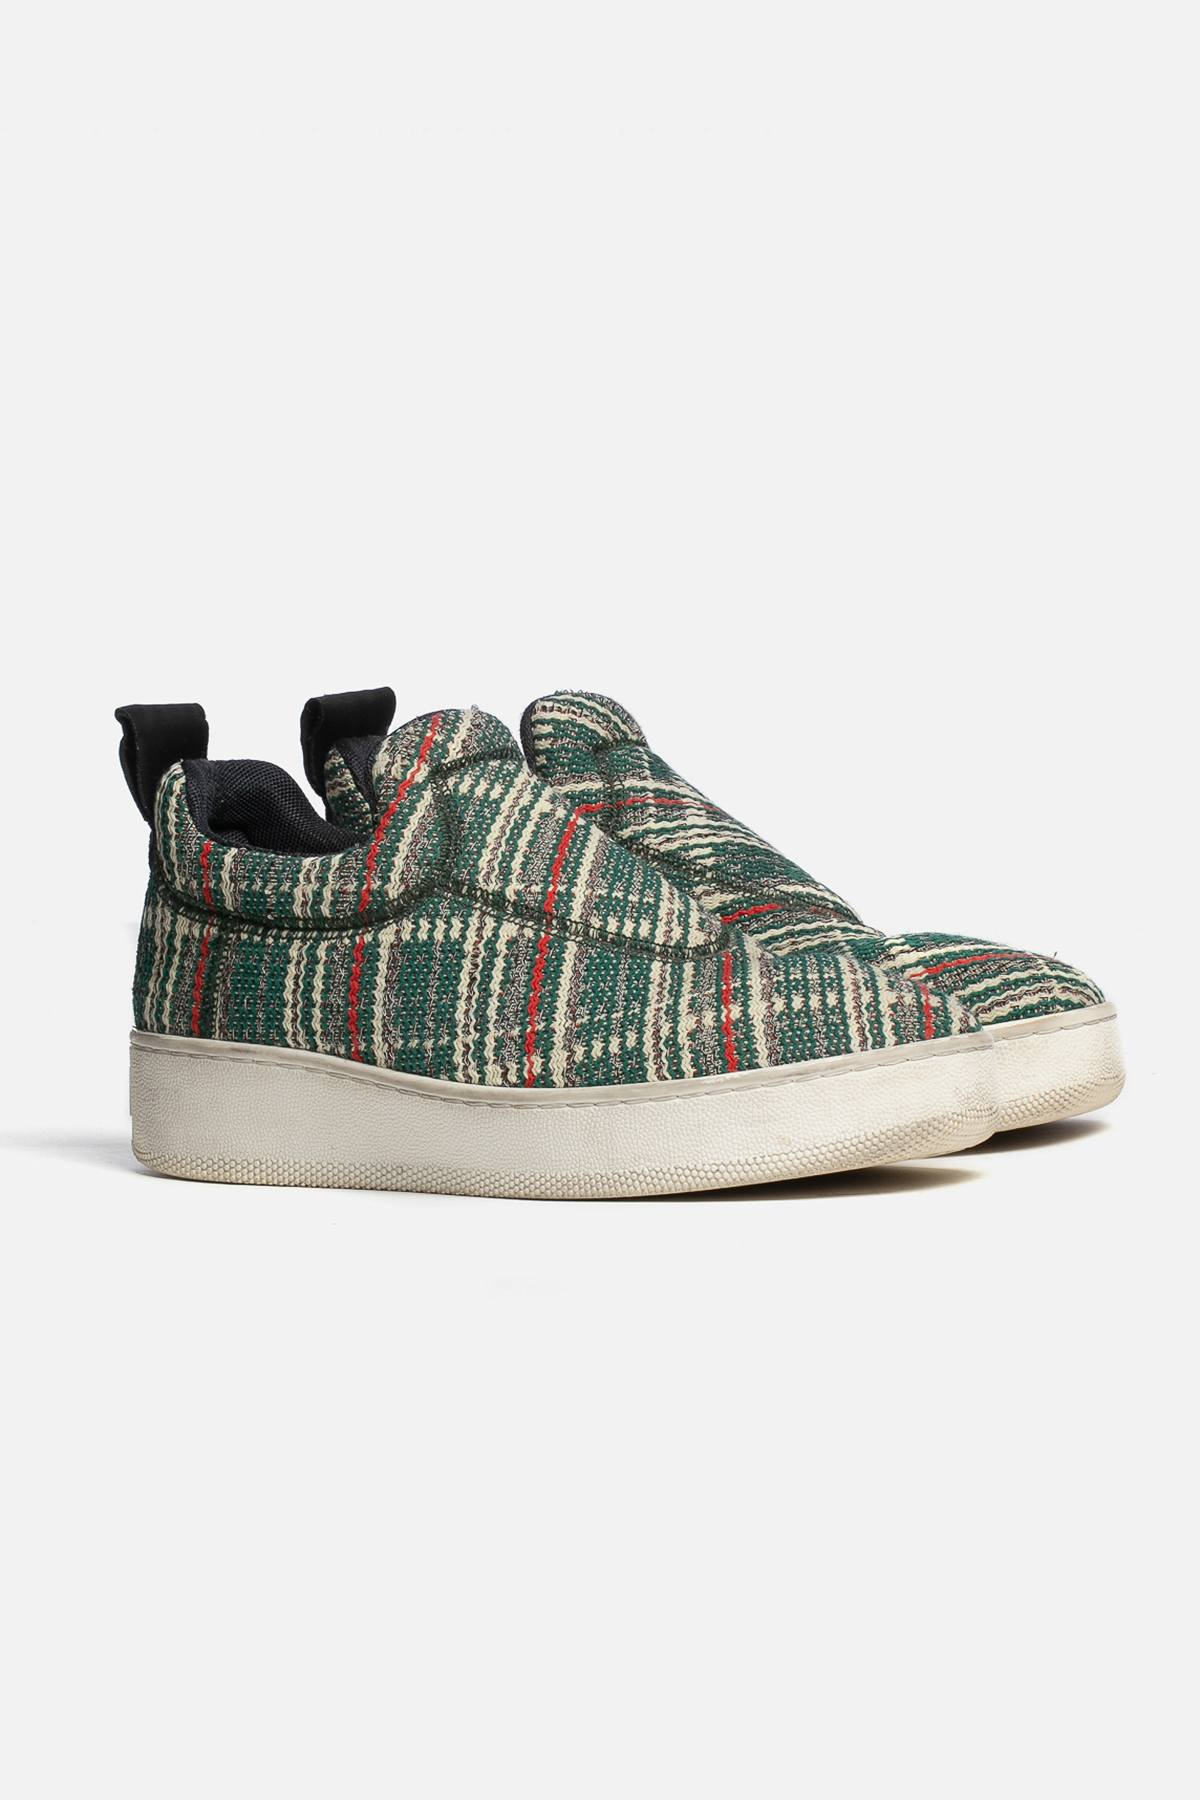 WOVEN SLIP-ON SNEAKERS